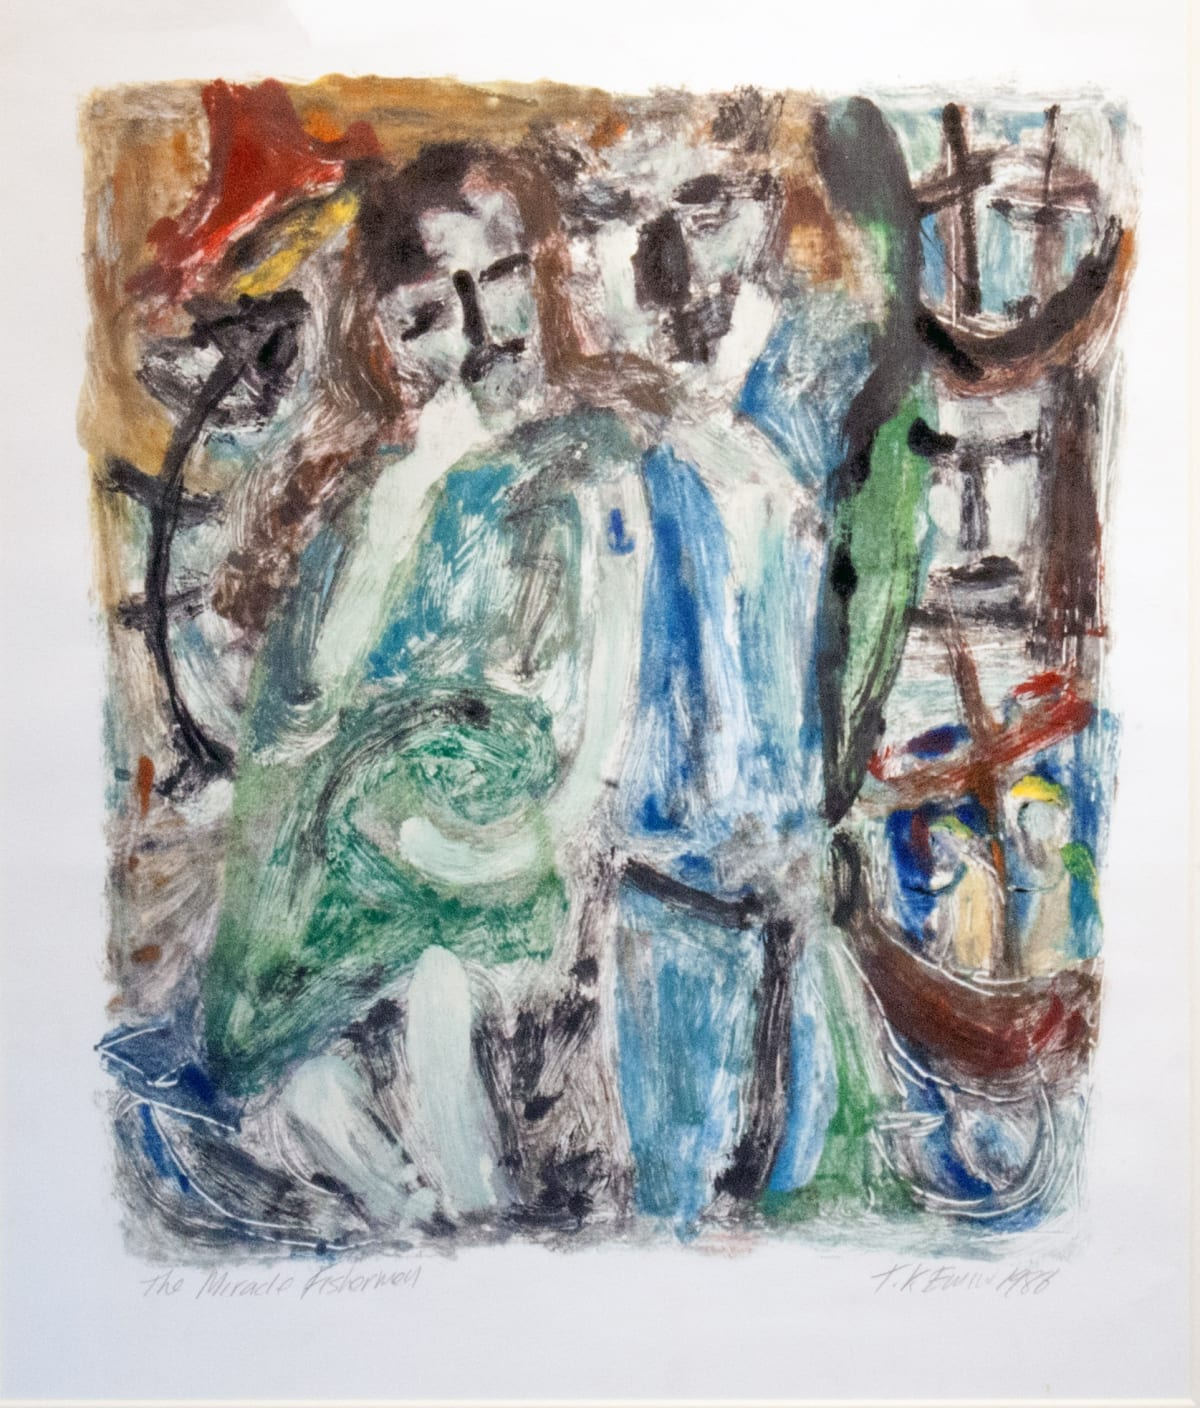 """<span class=""""artist""""><strong>Tracey Emin</strong></span>, <span class=""""title""""><em>The Miracle Fishermen</em>, 1986</span>"""